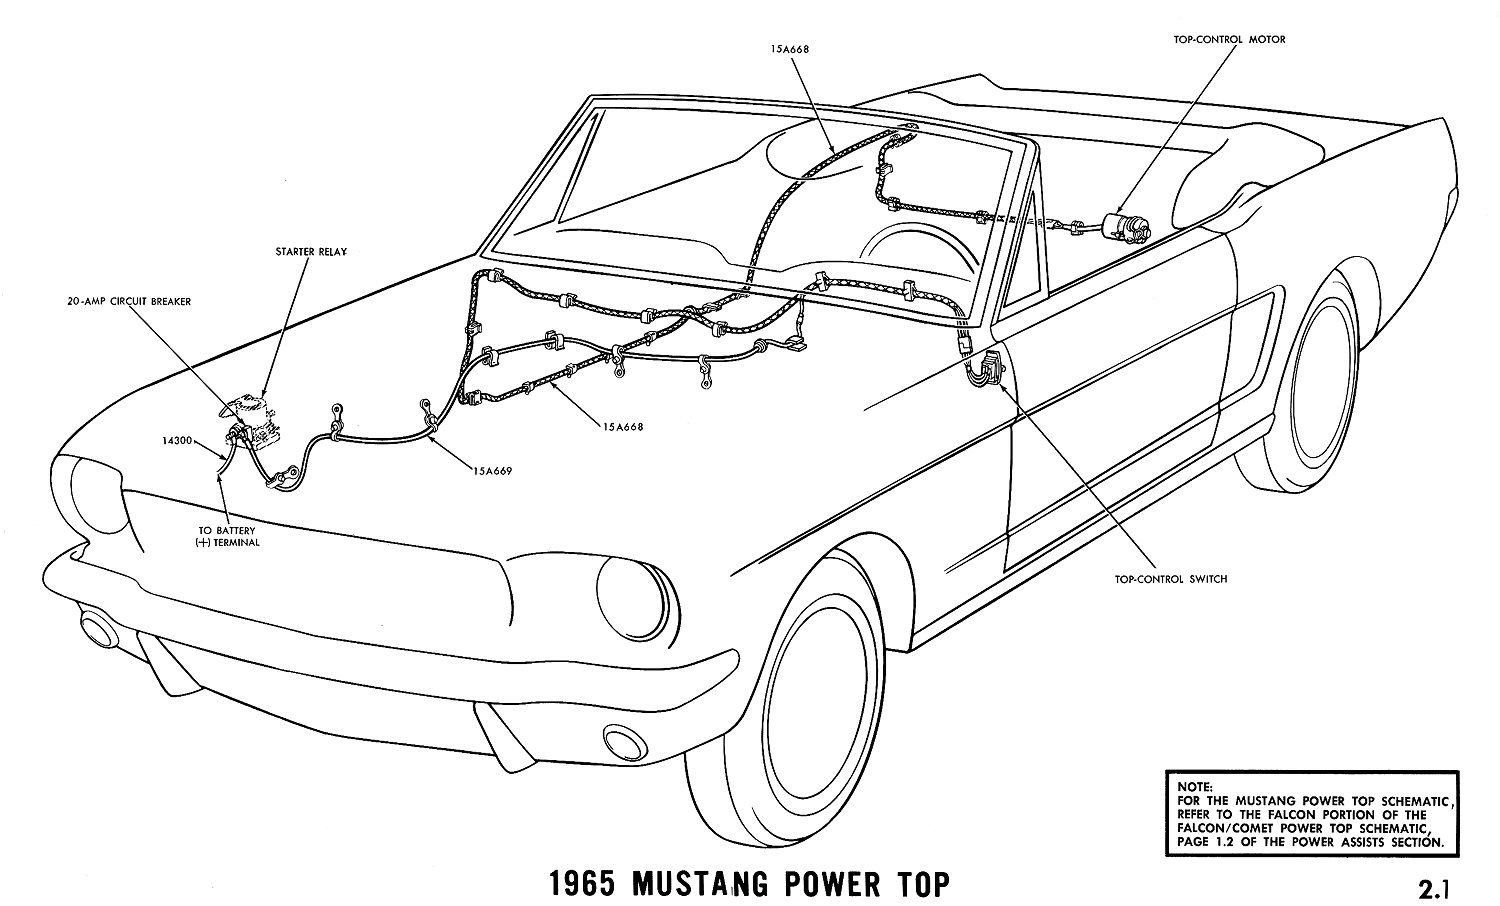 1965 mustang wiring diagrams average joe restoration 1965j 1965 mustang power top